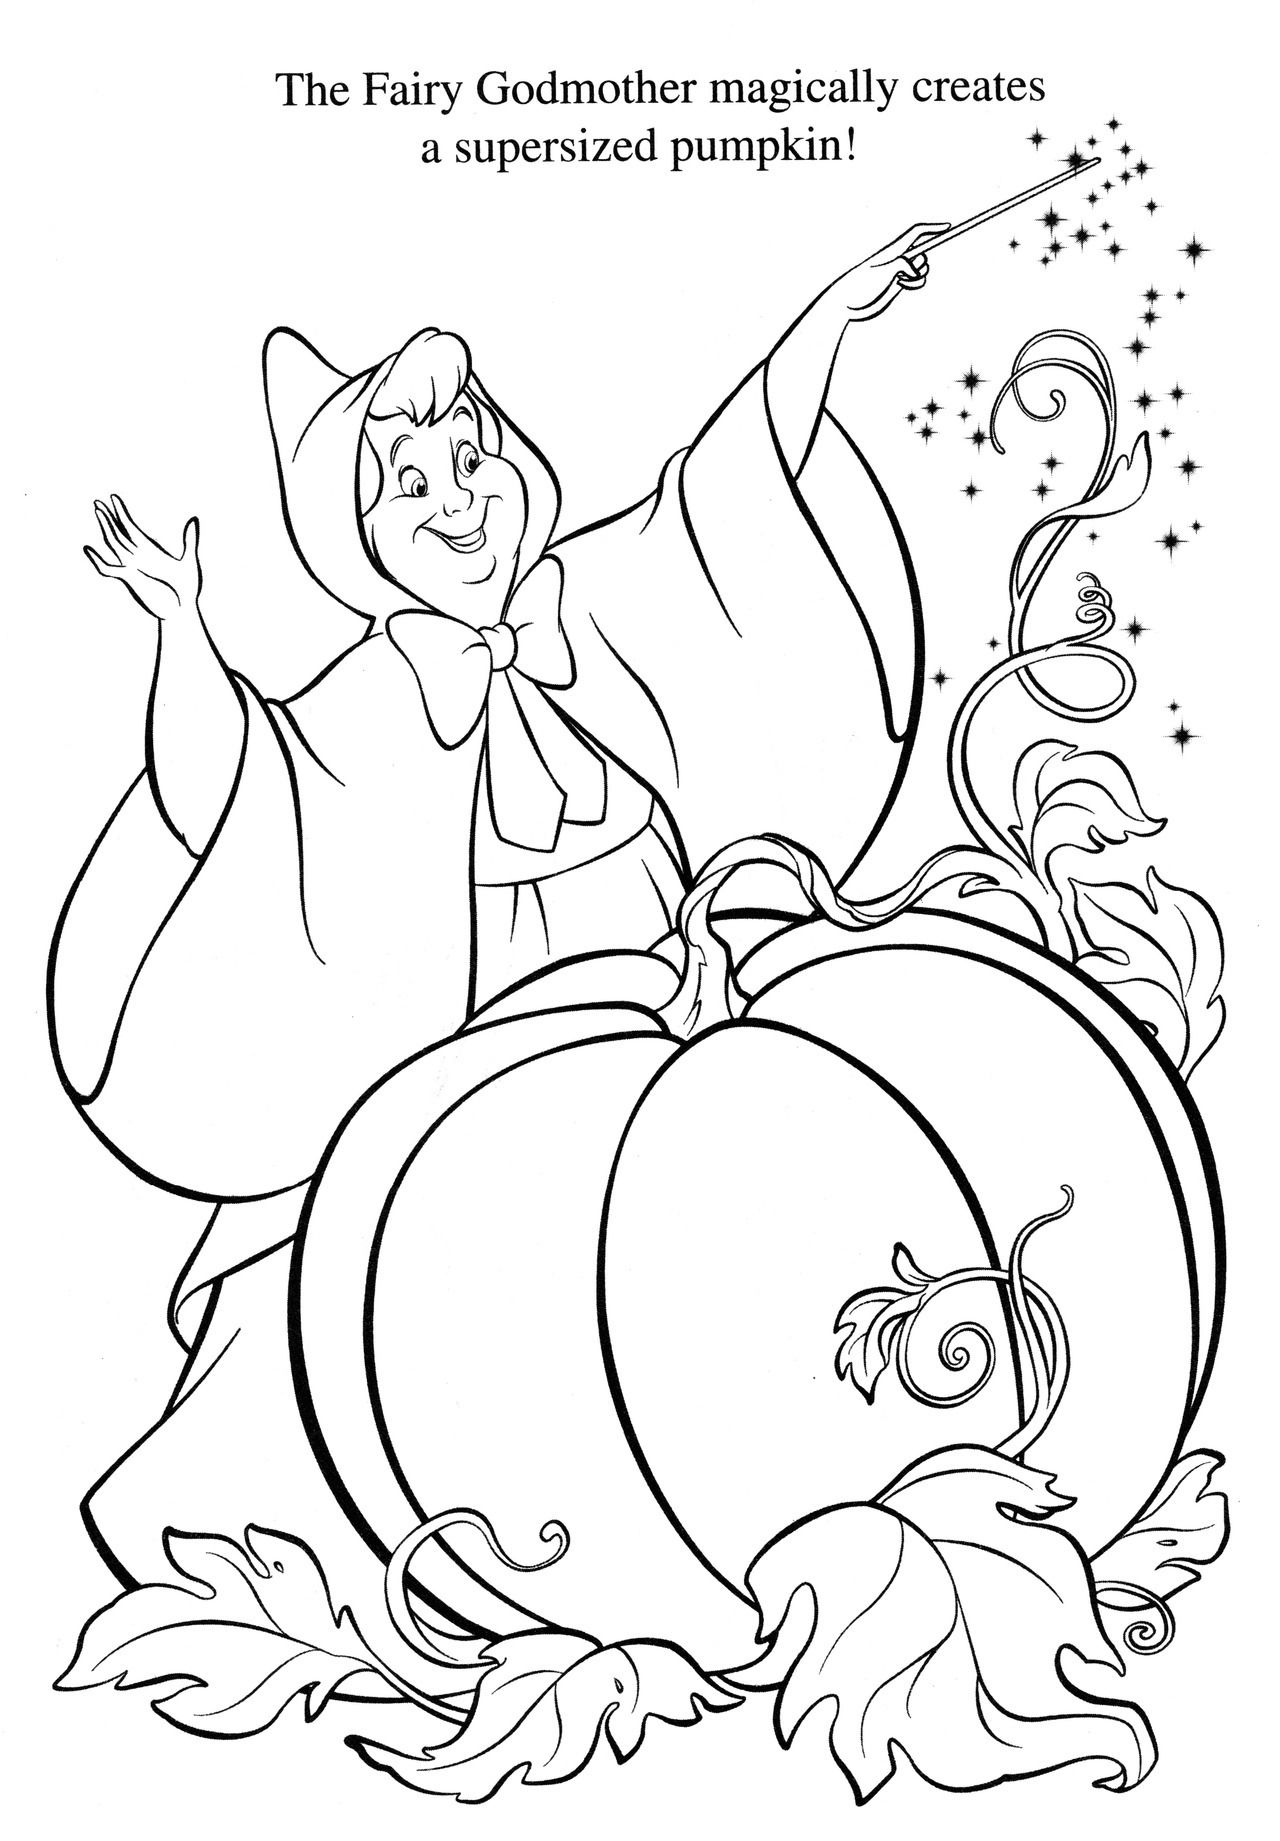 Disney Coloring Pages Cinderella Coloring Pages Disney Princess Coloring Pages Princess Coloring Pages